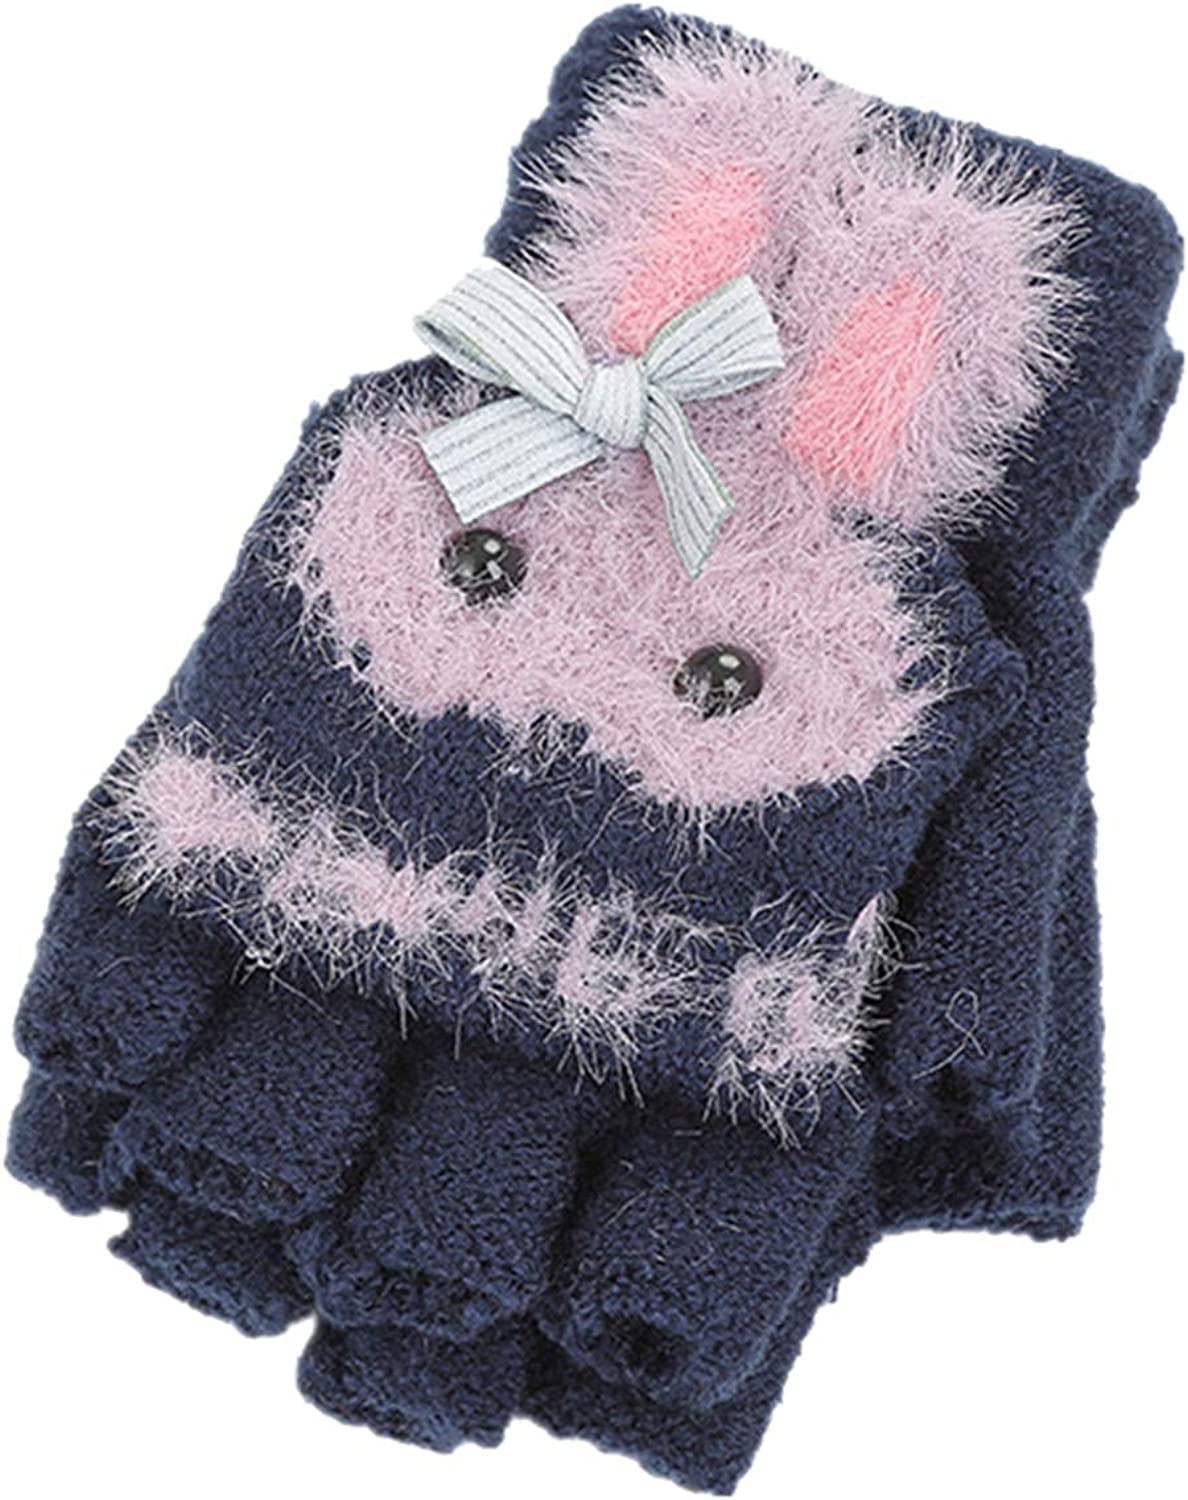 5-8 Years Girls Convertible Mittens, Bunny Knitted Thermal Kids Winter Gloves for Holiday Season